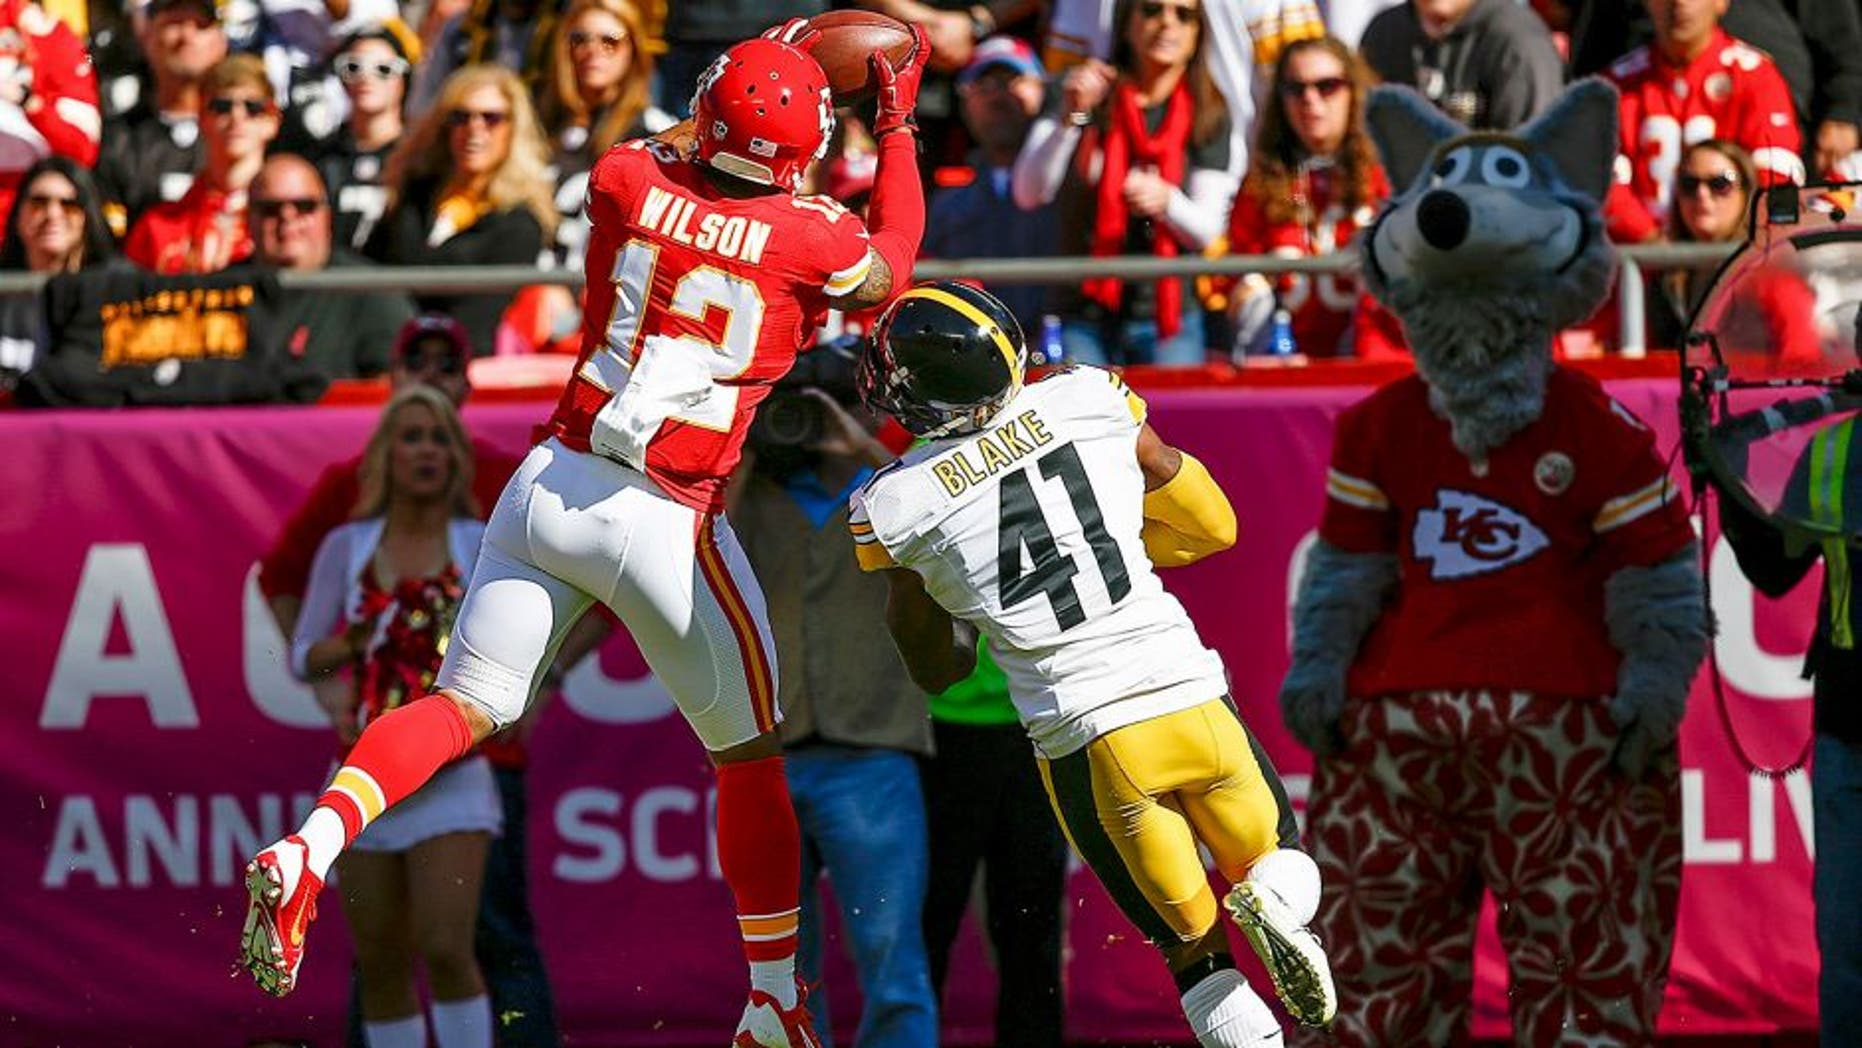 KANSAS CITY, MO - OCTOBER 25: Albert Wilson #12 of the Kansas City Chiefs makes a catch over Antwon Blake #41 of the Pittsburgh Steelers at Arrowhead Stadium during the game on October 25, 2015 in Kansas City, Missouri. (Photo by Jamie Squire/Getty Images)